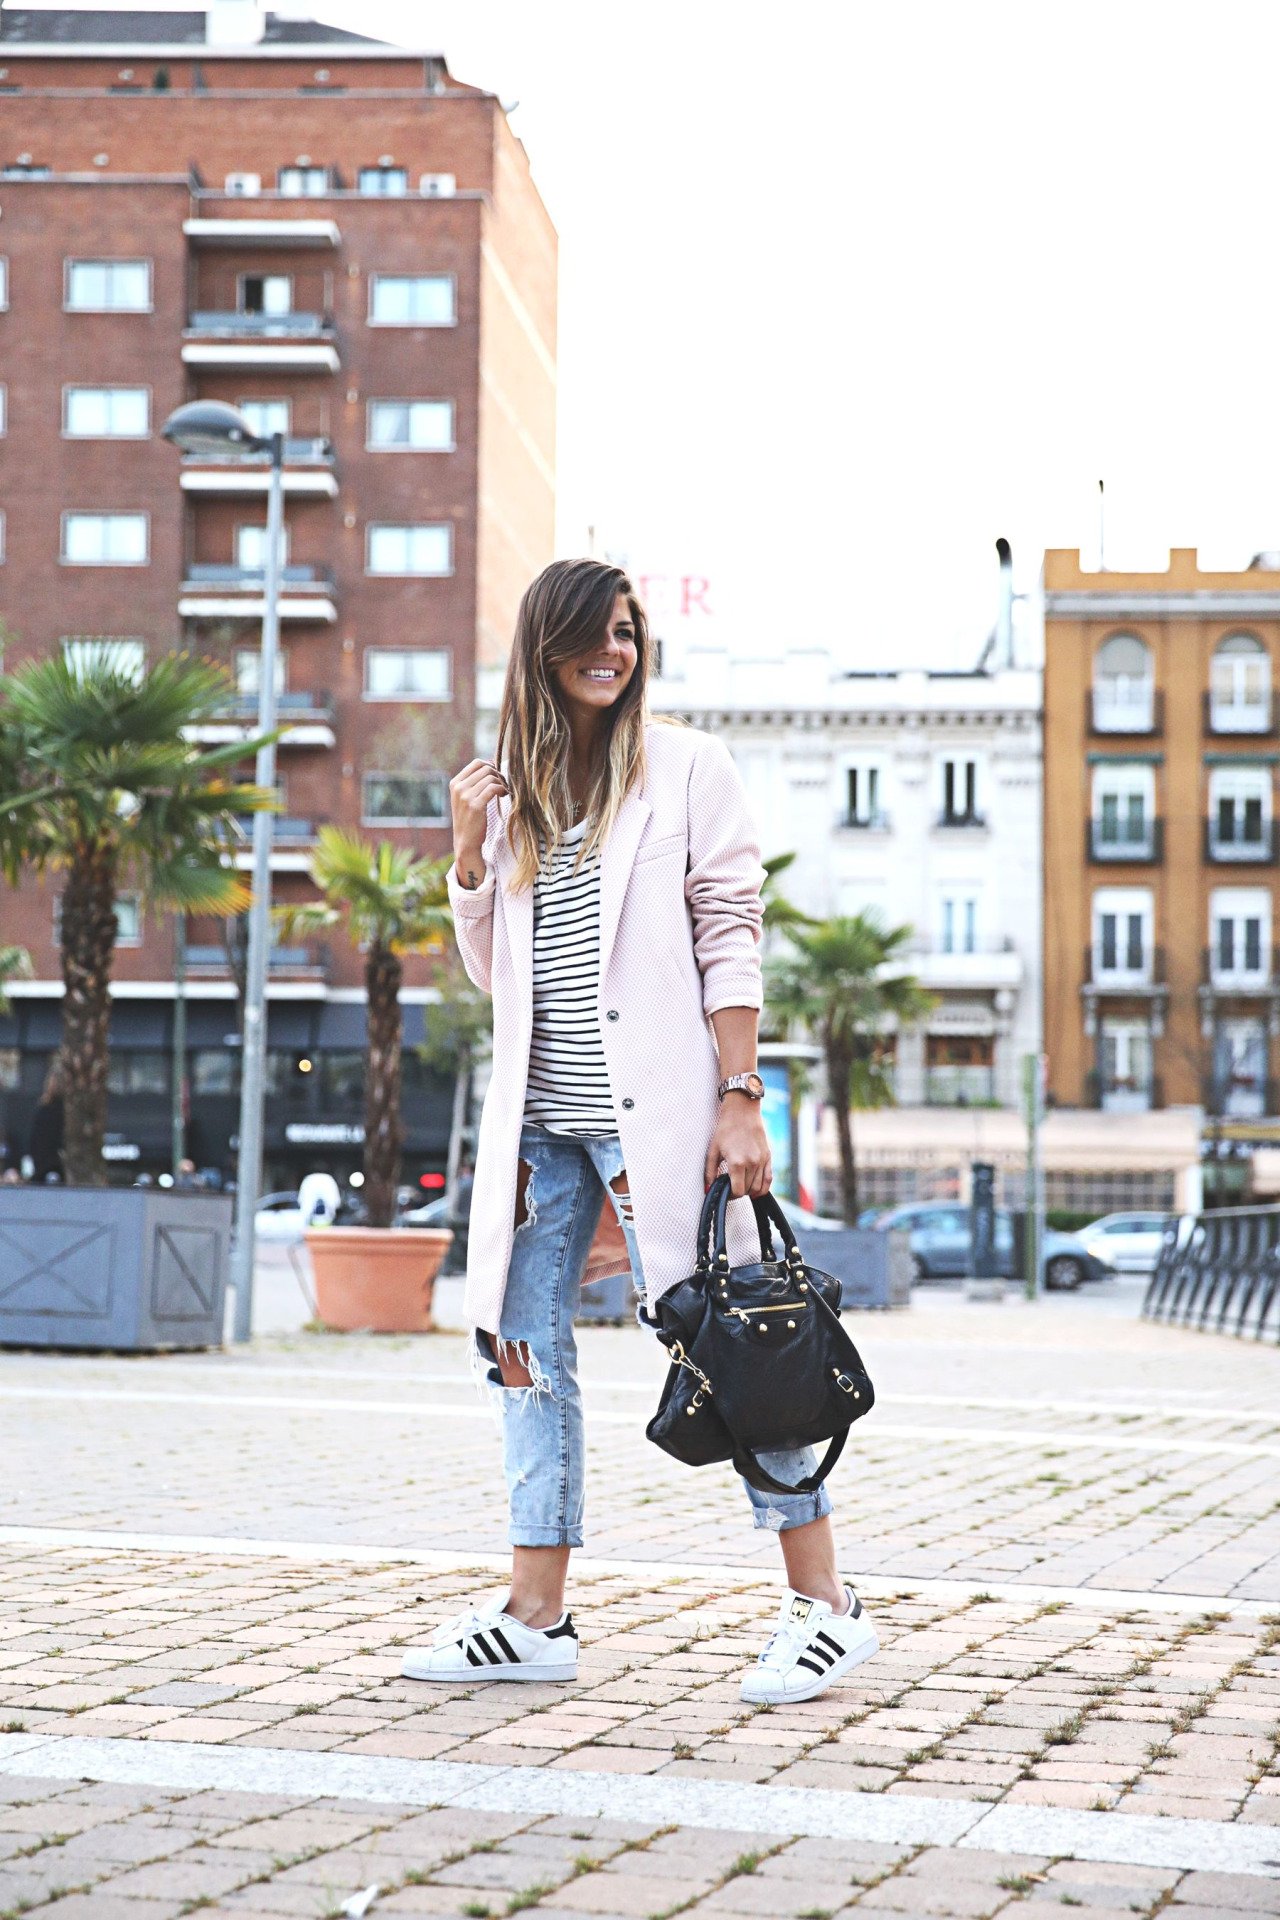 6a62fd7a2f0 Natalia Cabezas is wearing a blue and white striped T-shirt from Zara